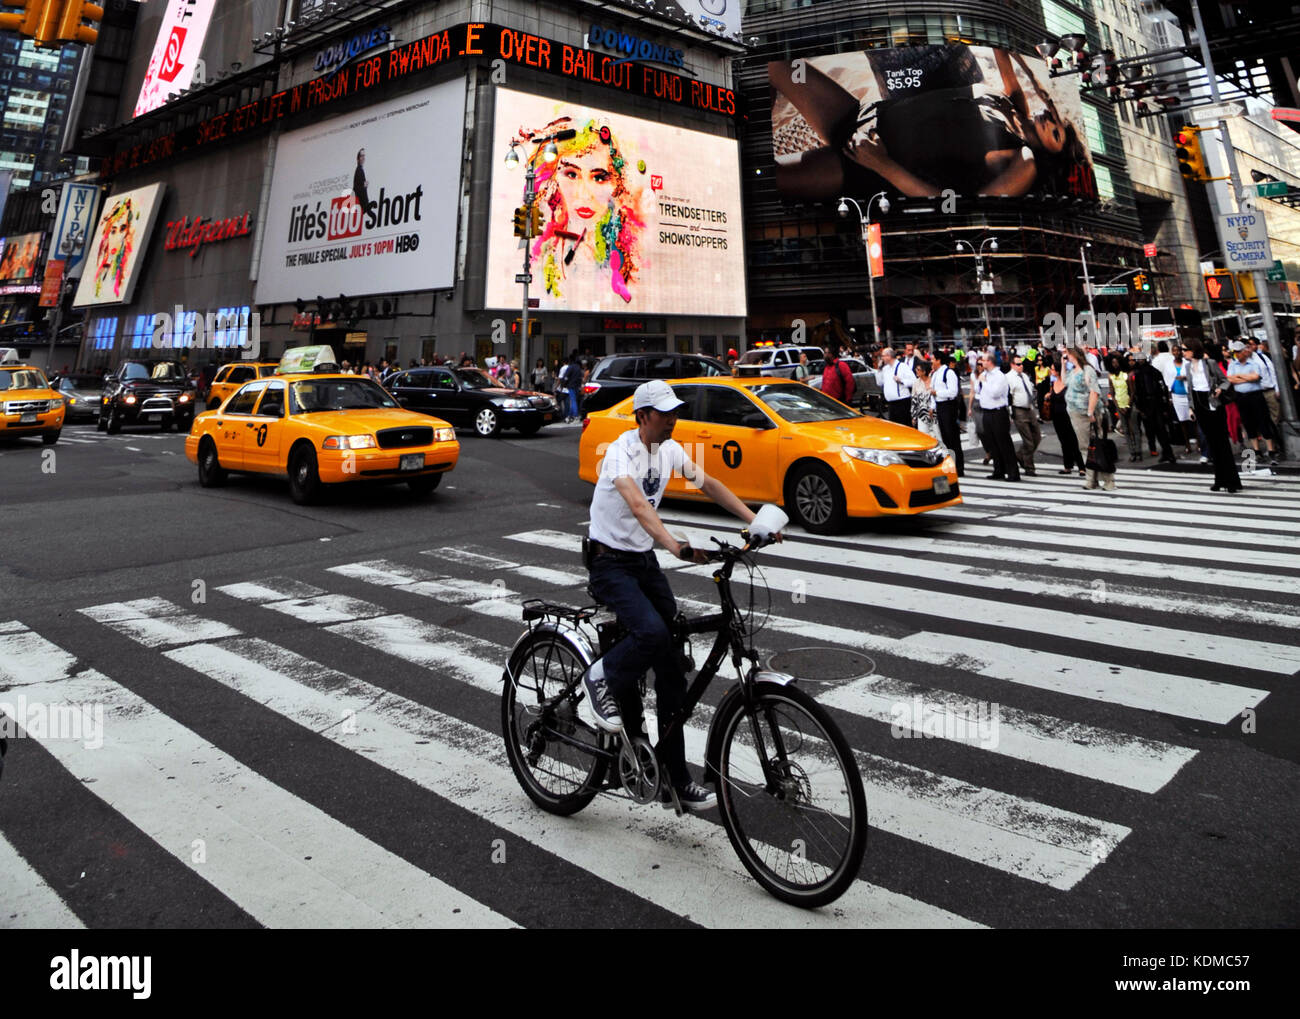 7th Ave & 42nd St junction in Midtown Manhattan. - Stock Image